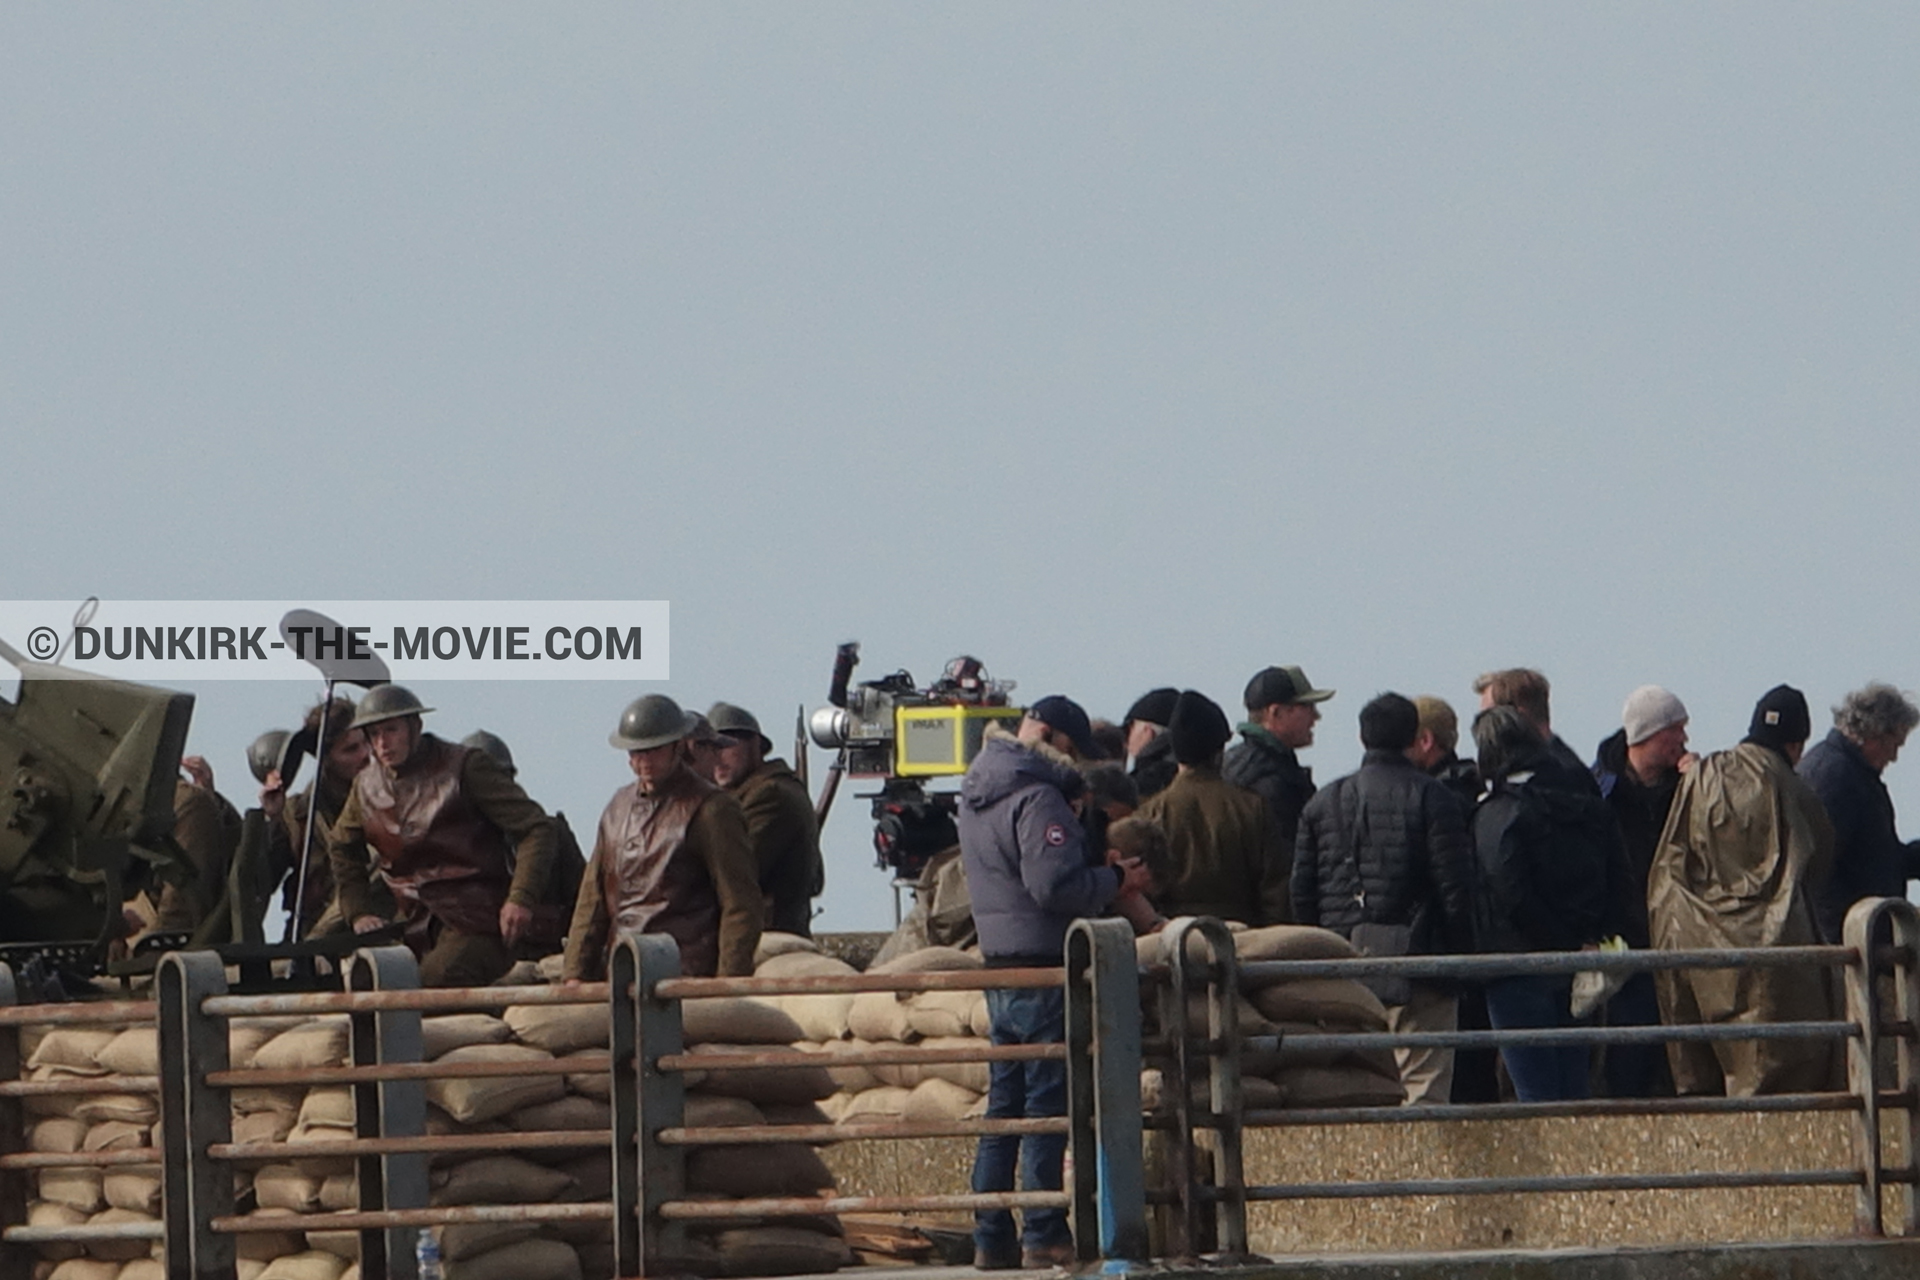 Picture with IMAX camera, supernumeraries, EST pier, Christopher Nolan,  from behind the scene of the Dunkirk movie by Nolan